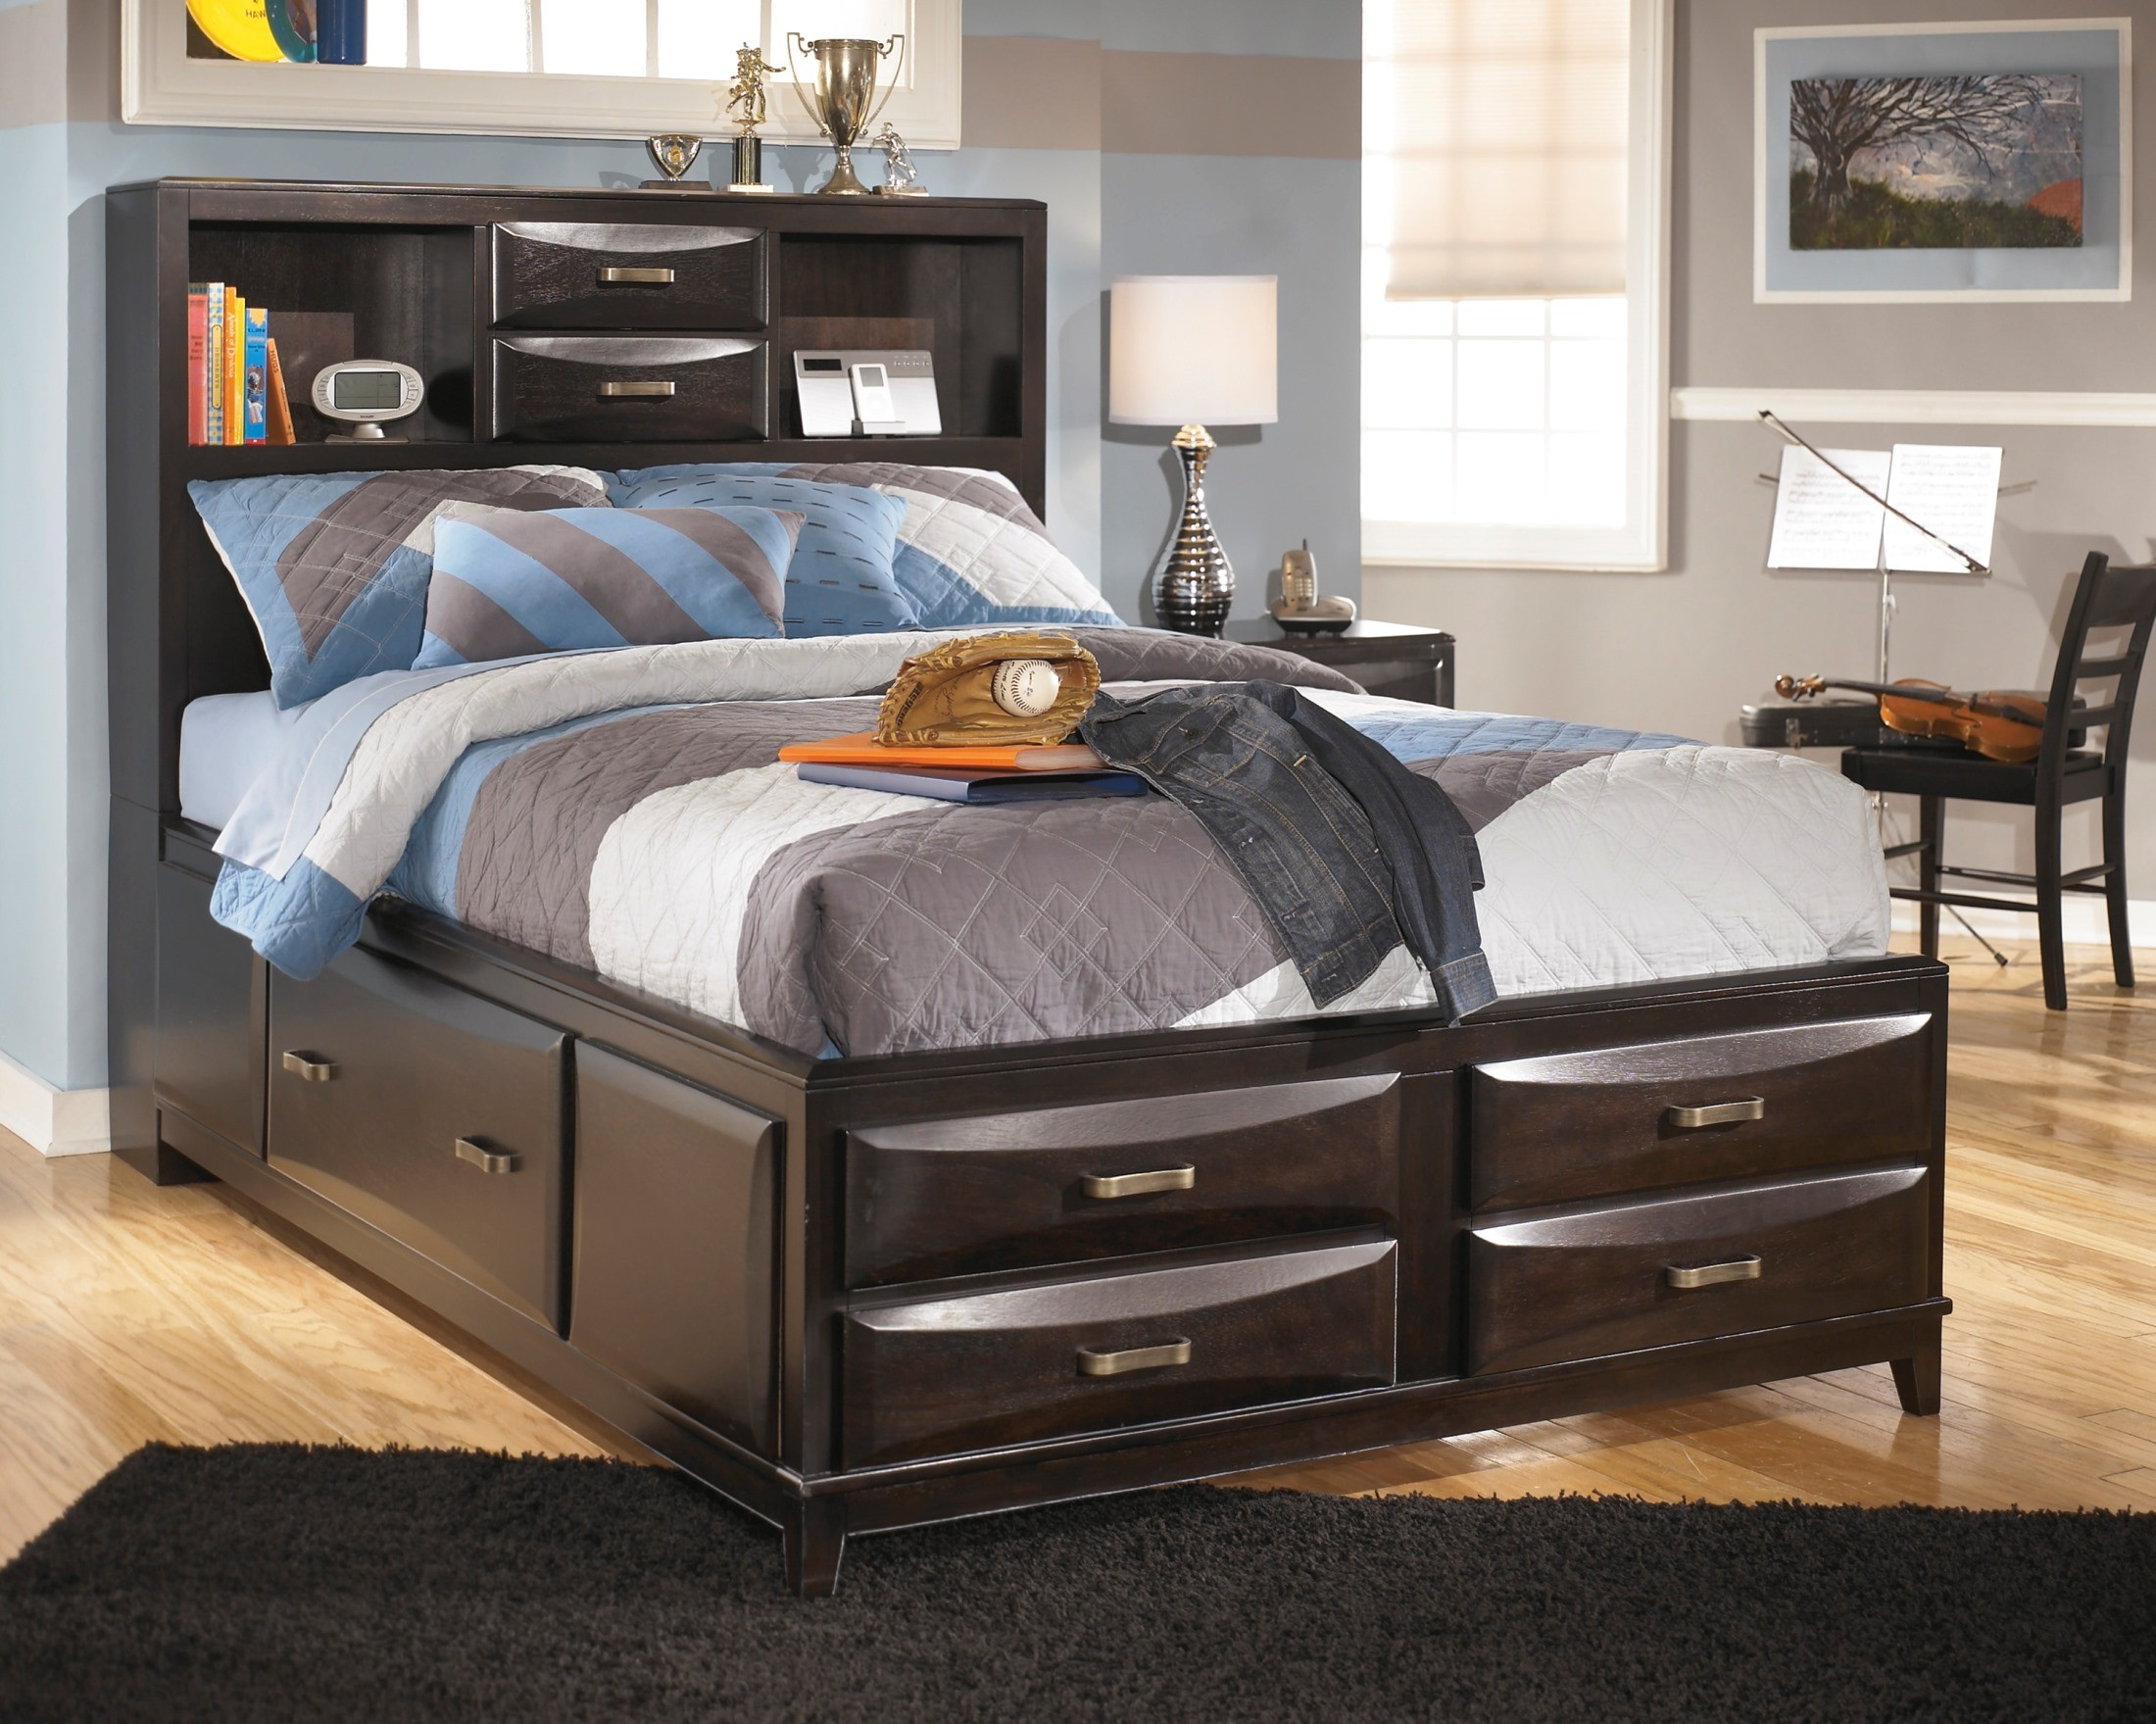 Walmart Storage Beds Full